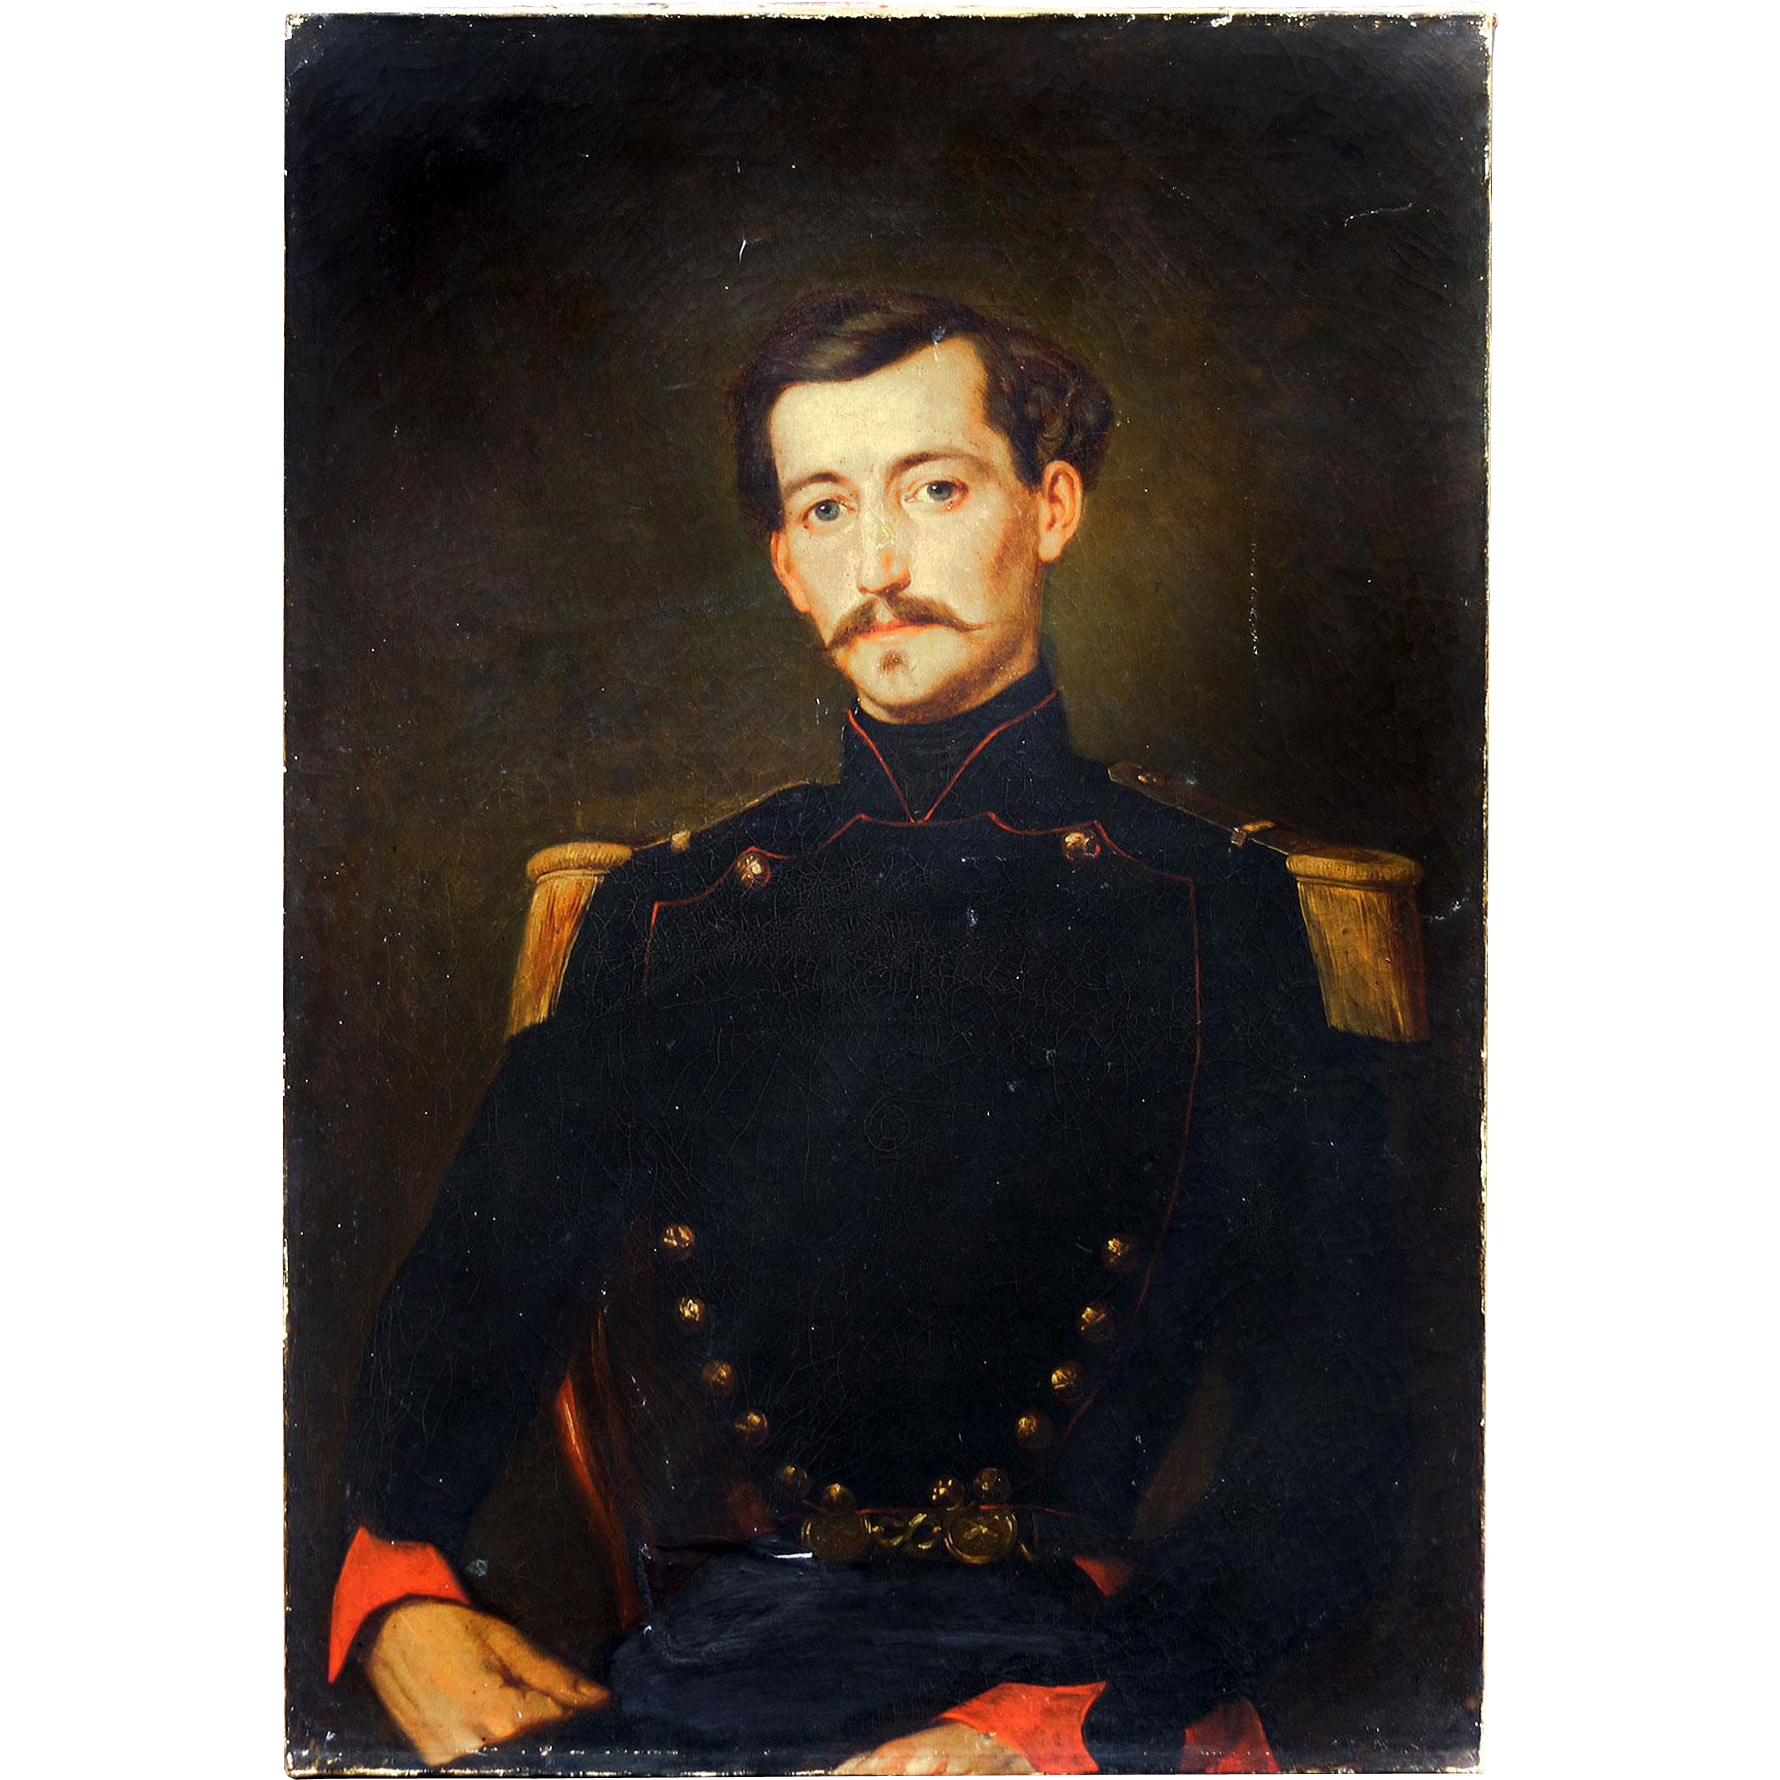 Portrait Painting in Oil of a Cavalry Officer..